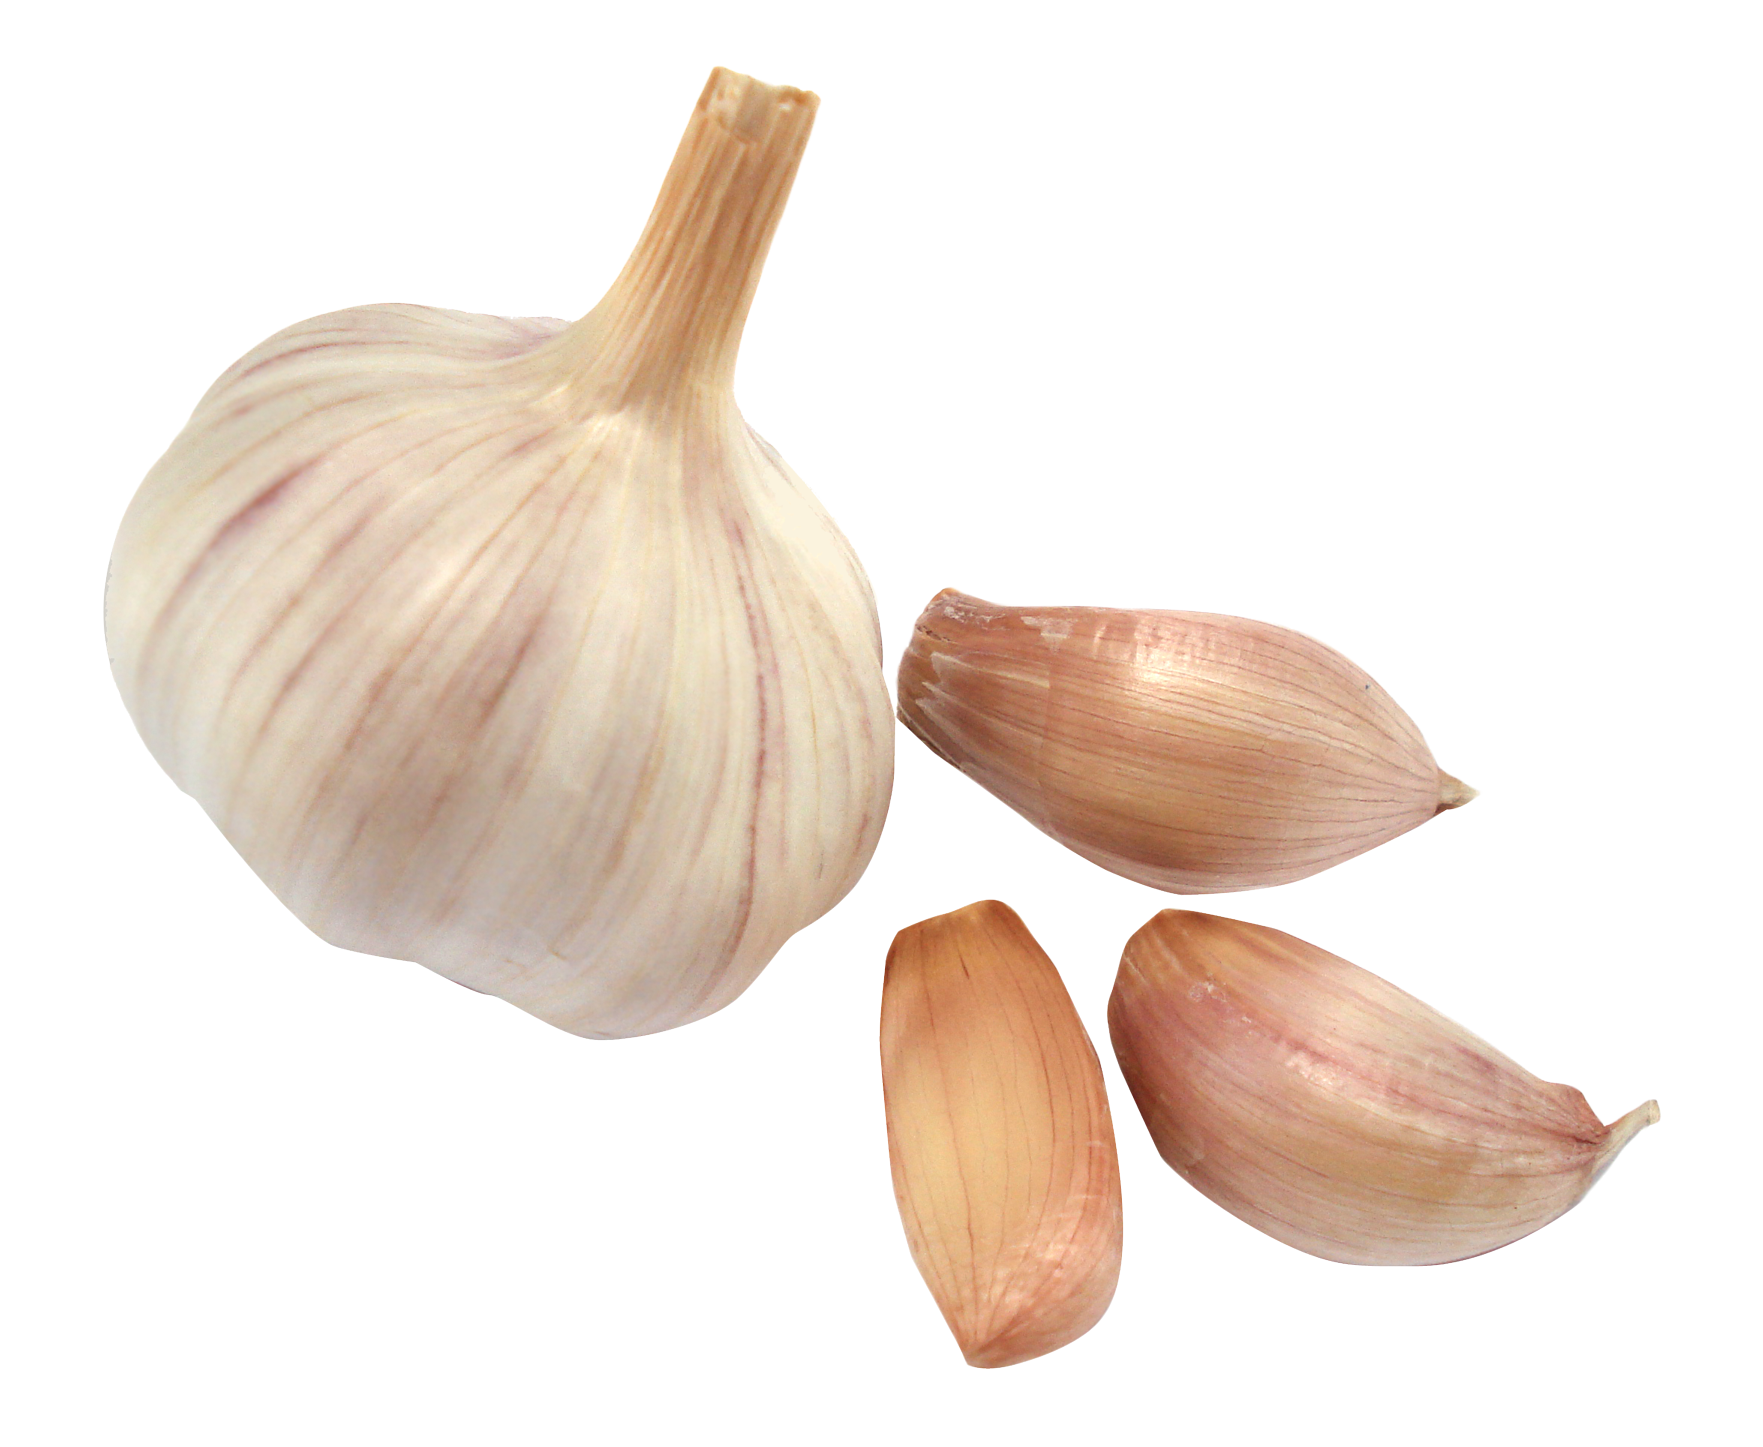 jpg 3732x3085 Garlic transpar